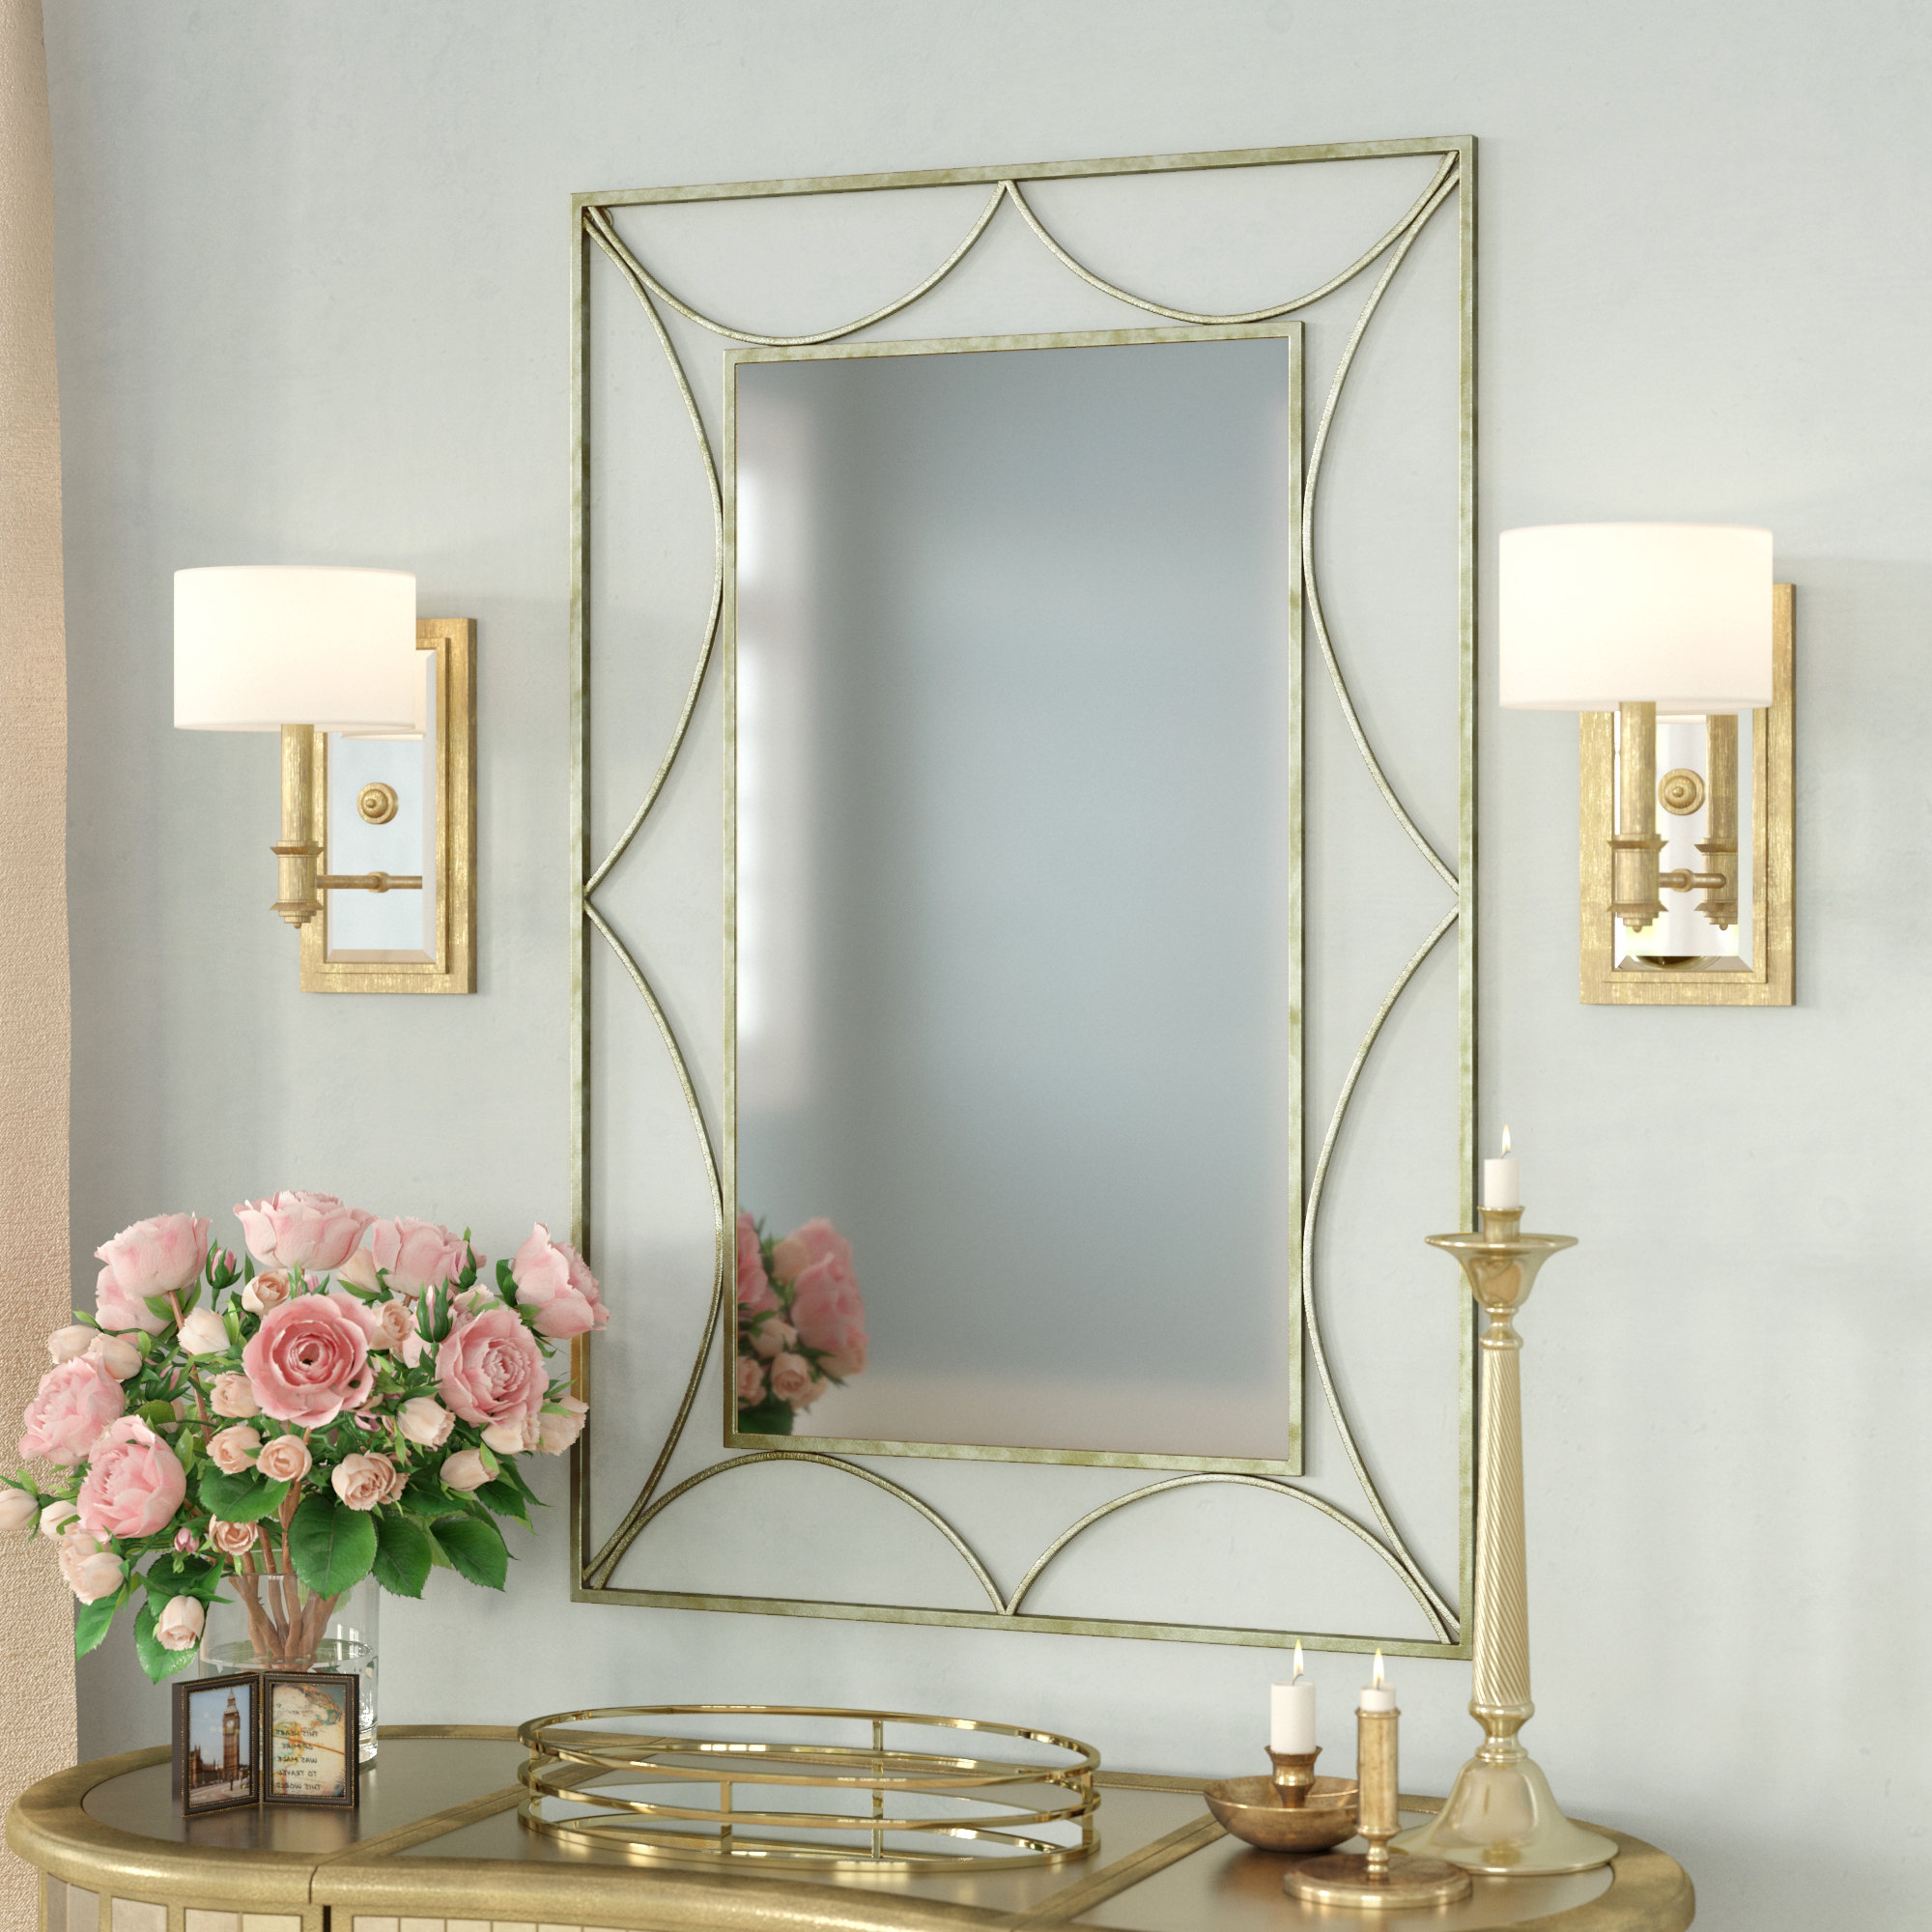 Ellesmere Wall Accent Mirror Intended For Best And Newest Ulus Accent Mirrors (View 15 of 20)